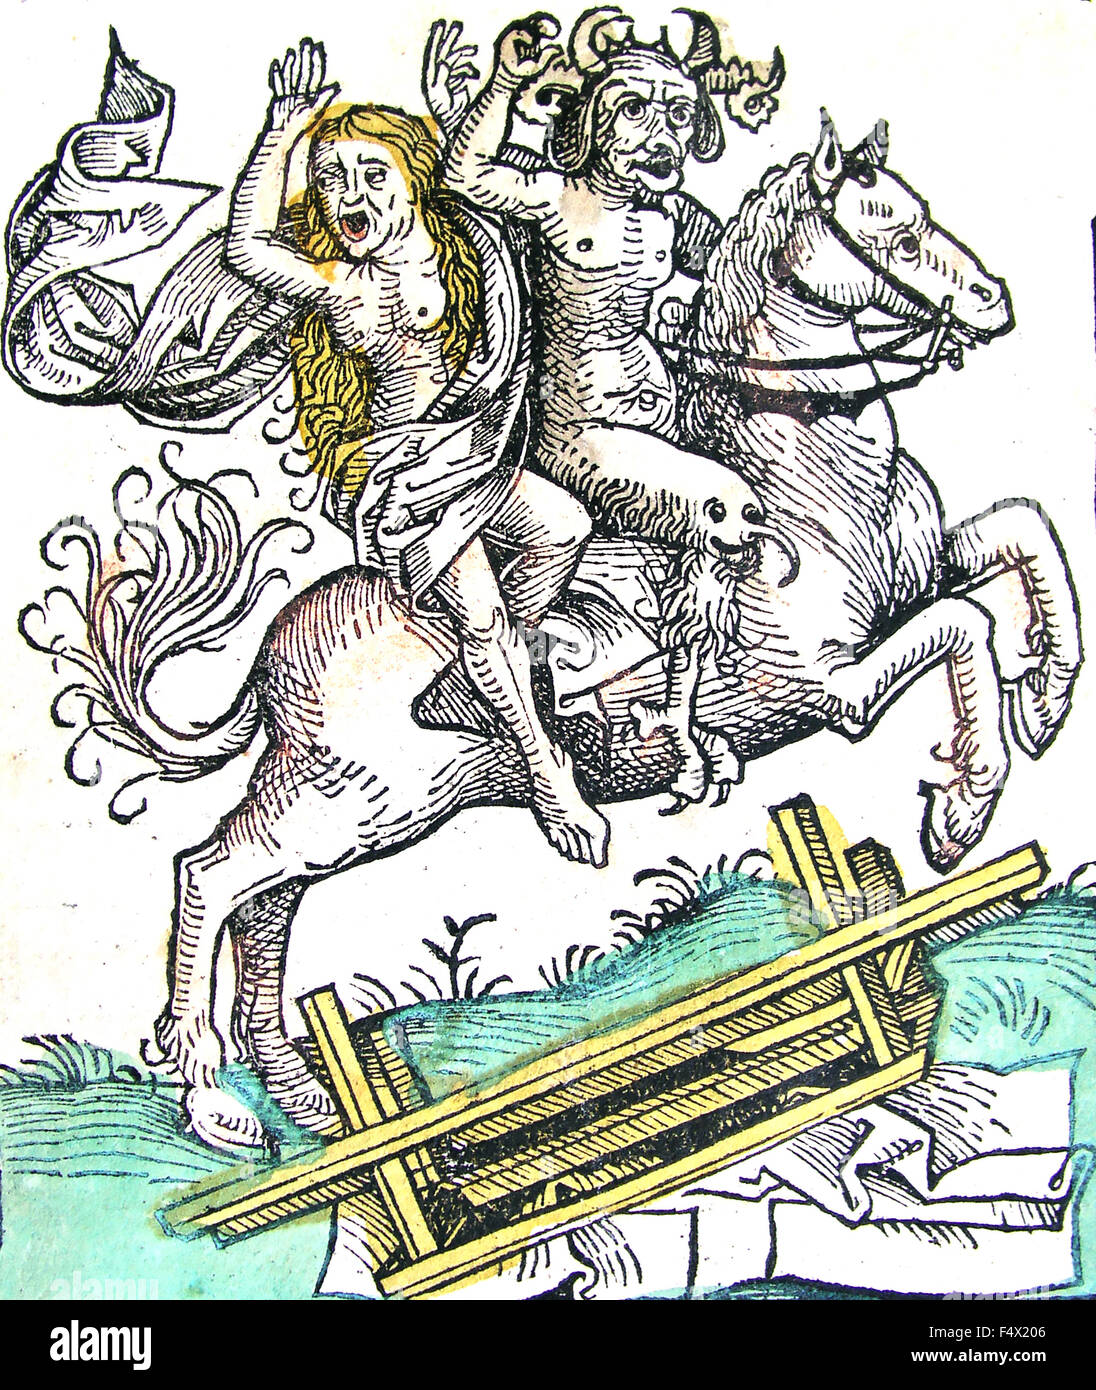 NUREMBERG CHRONICLE 15th century wood engraving of a witch and devil on horseback crosing a bridge - Stock Image